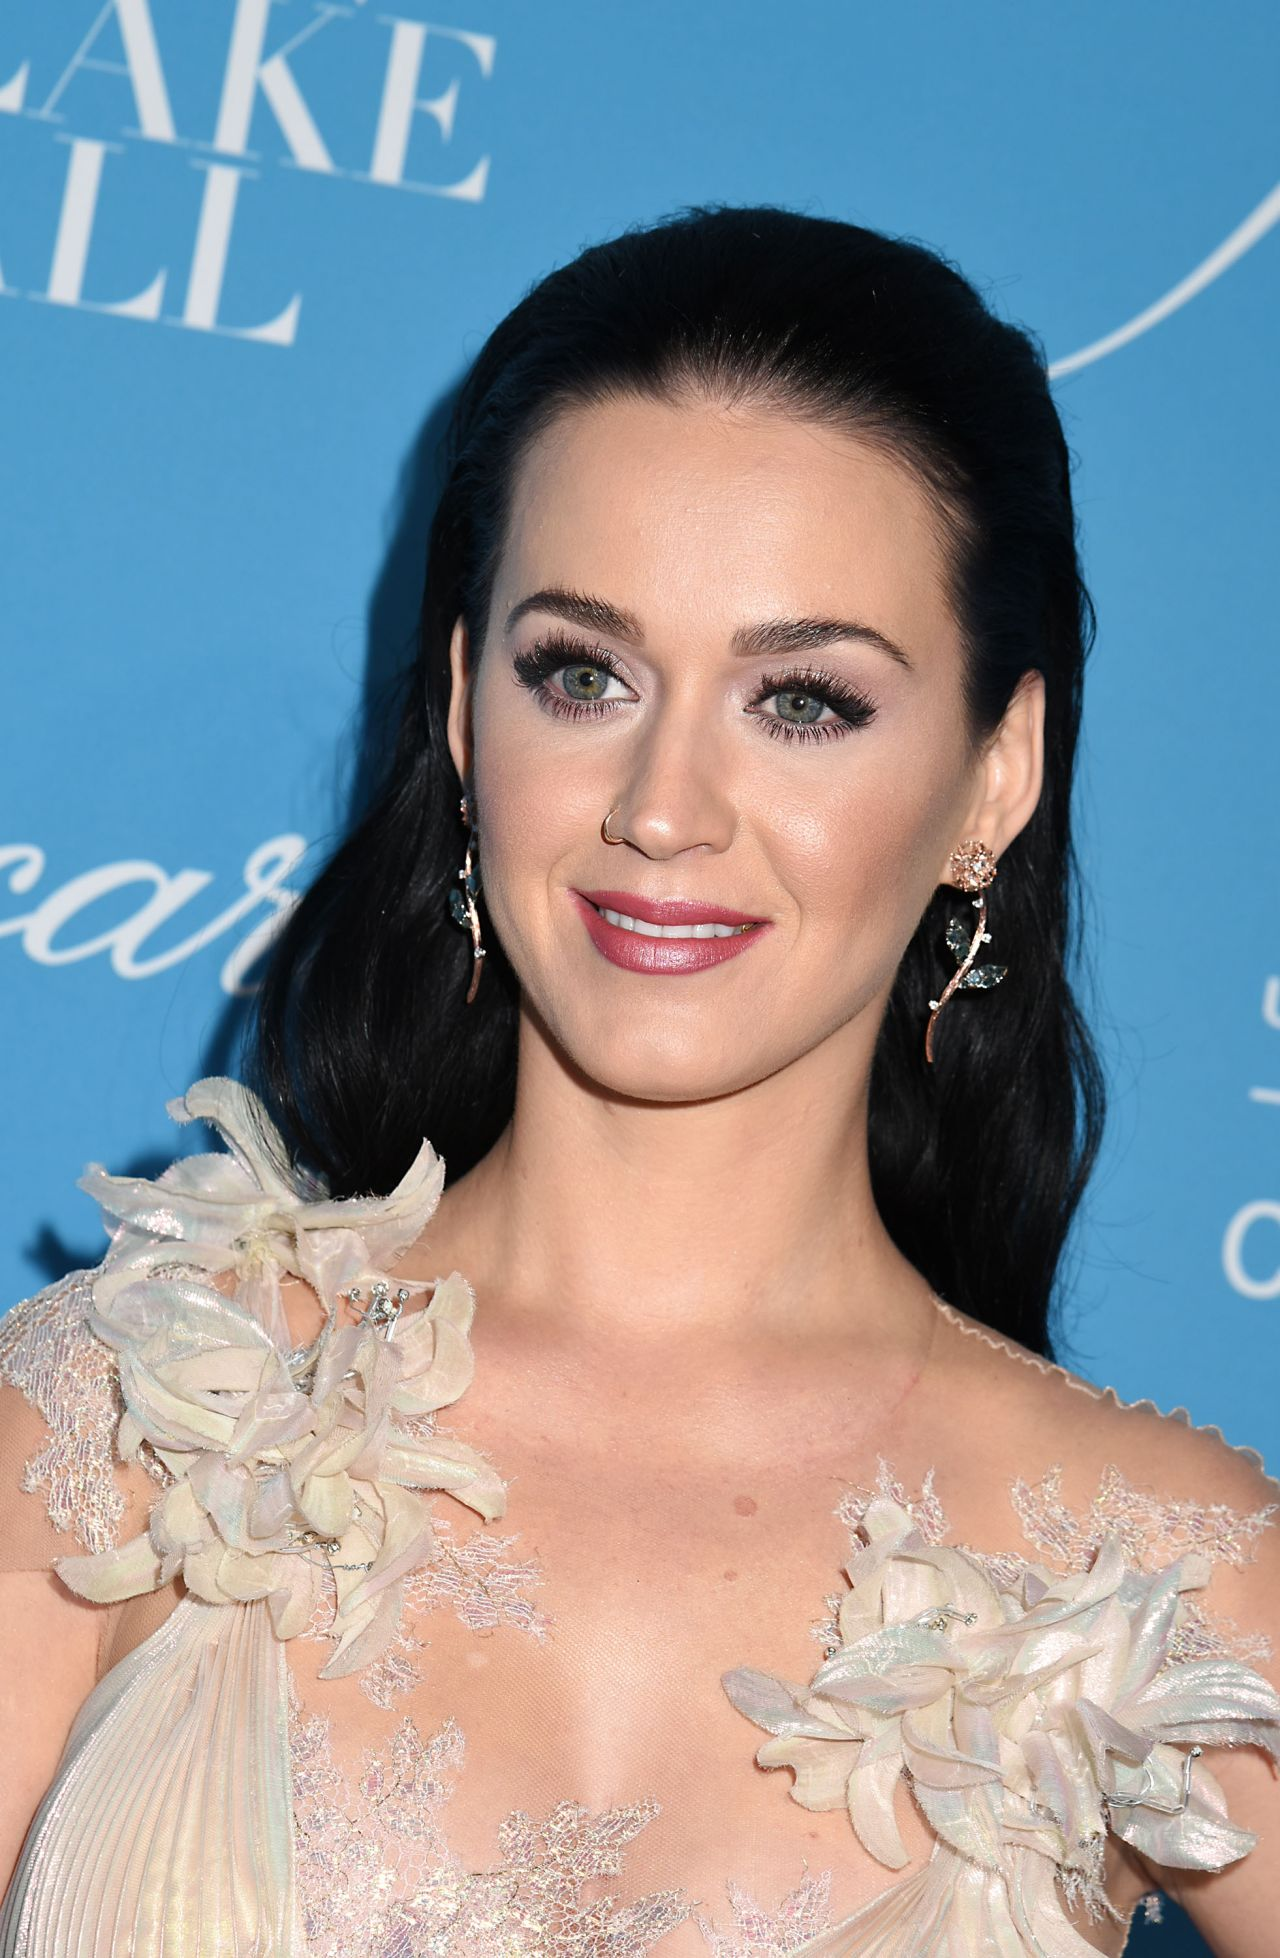 katy perry - photo #27